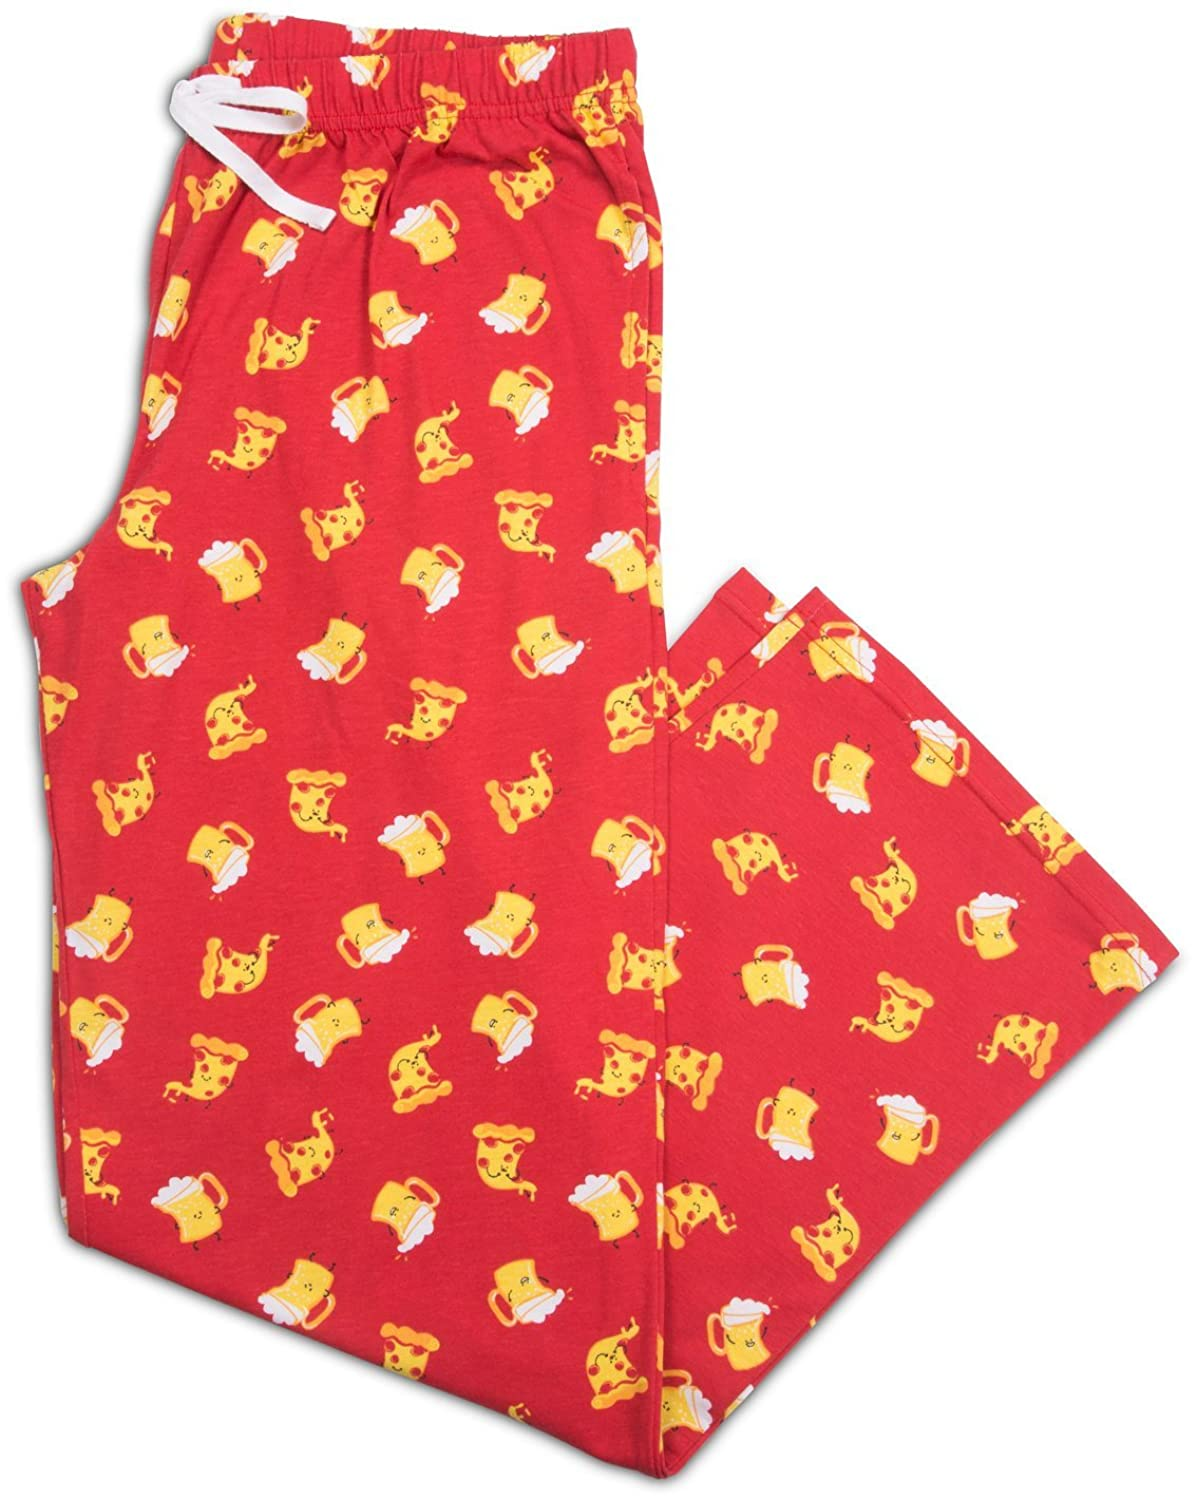 Late Night Snacks Pizza and Beer Unisex Pajama Pants With Pockets - Large